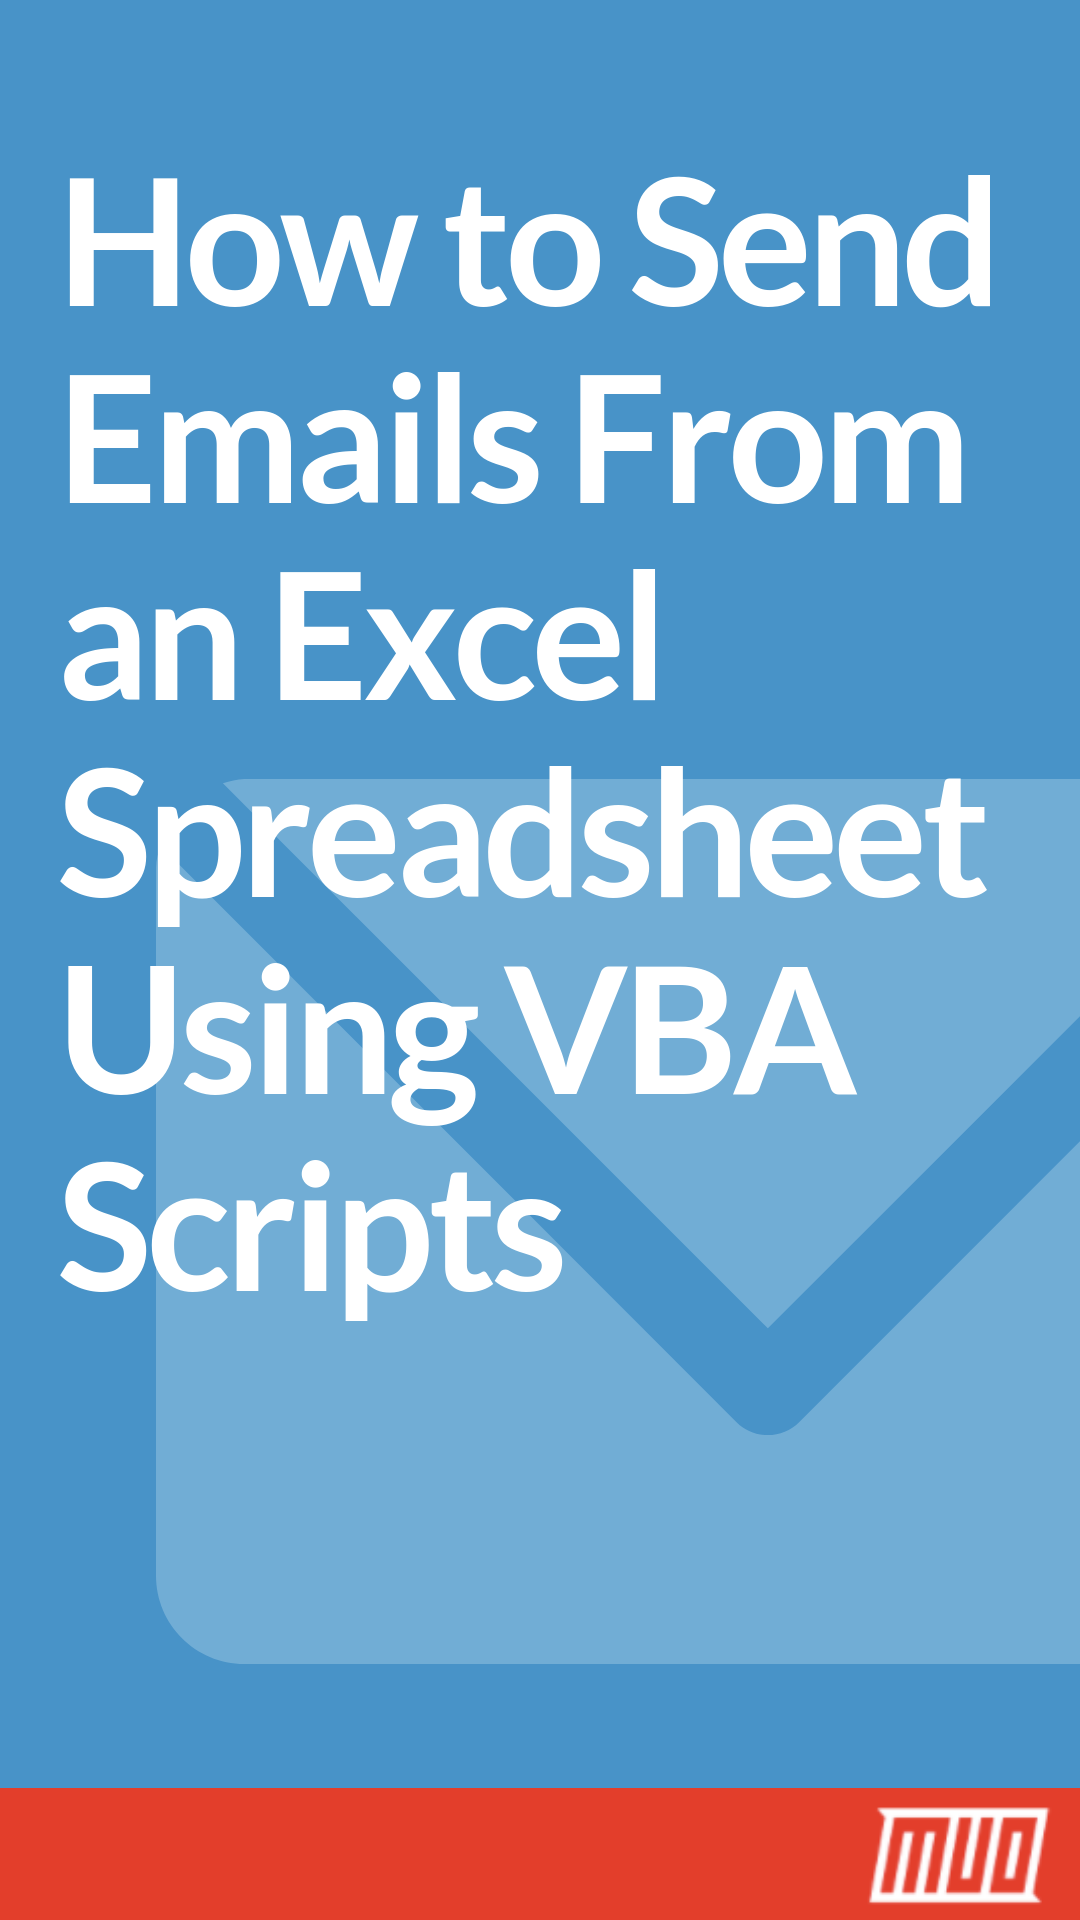 How To Send Emails From An Excel Spreadsheet Using Vba Scripts